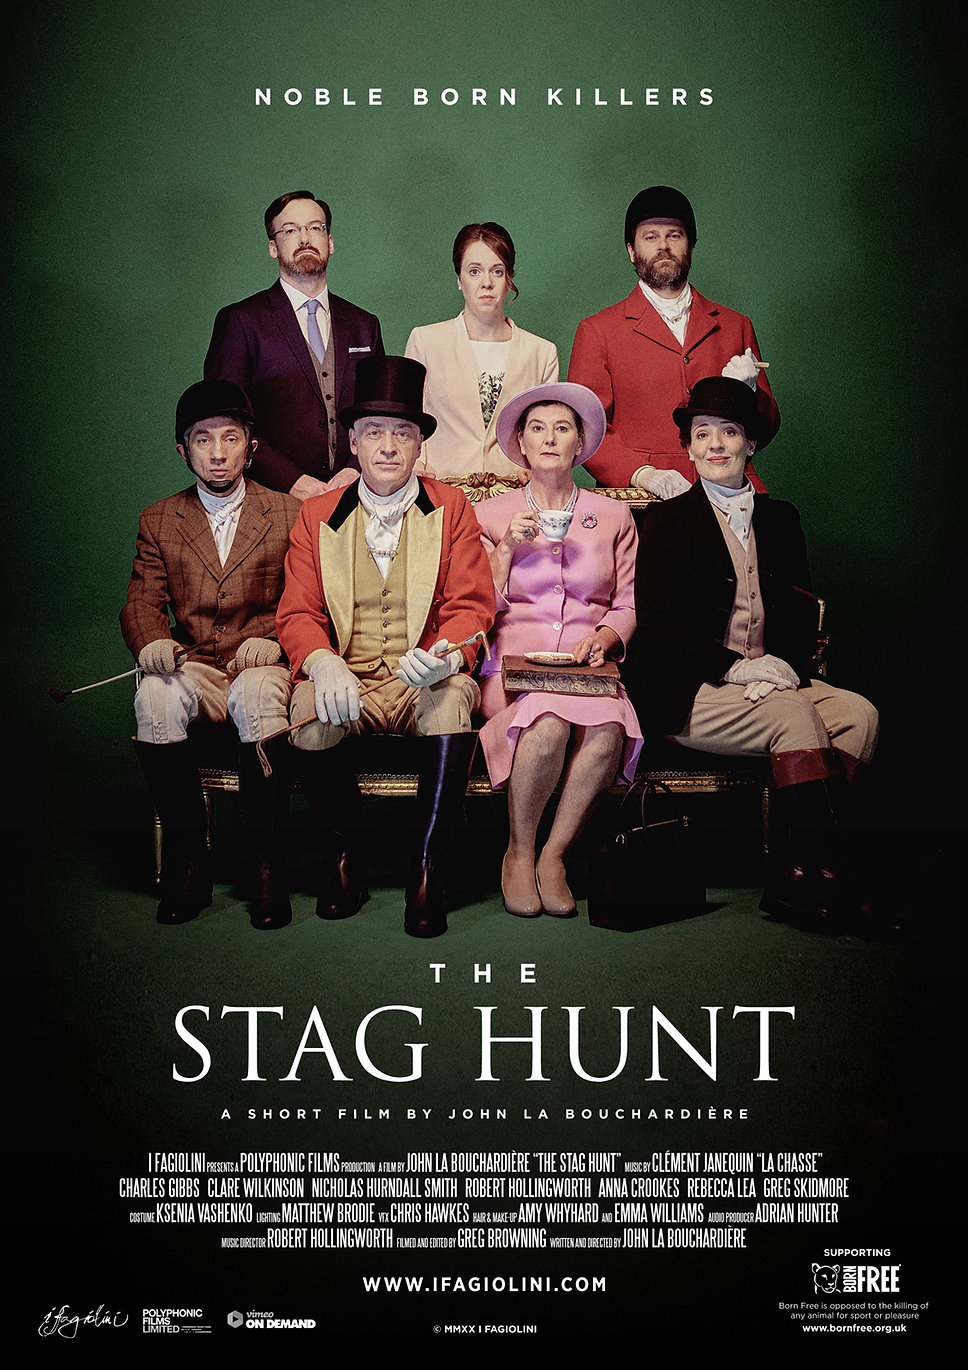 Poster for The Stag Hunt, a short film by John La Bouchardière